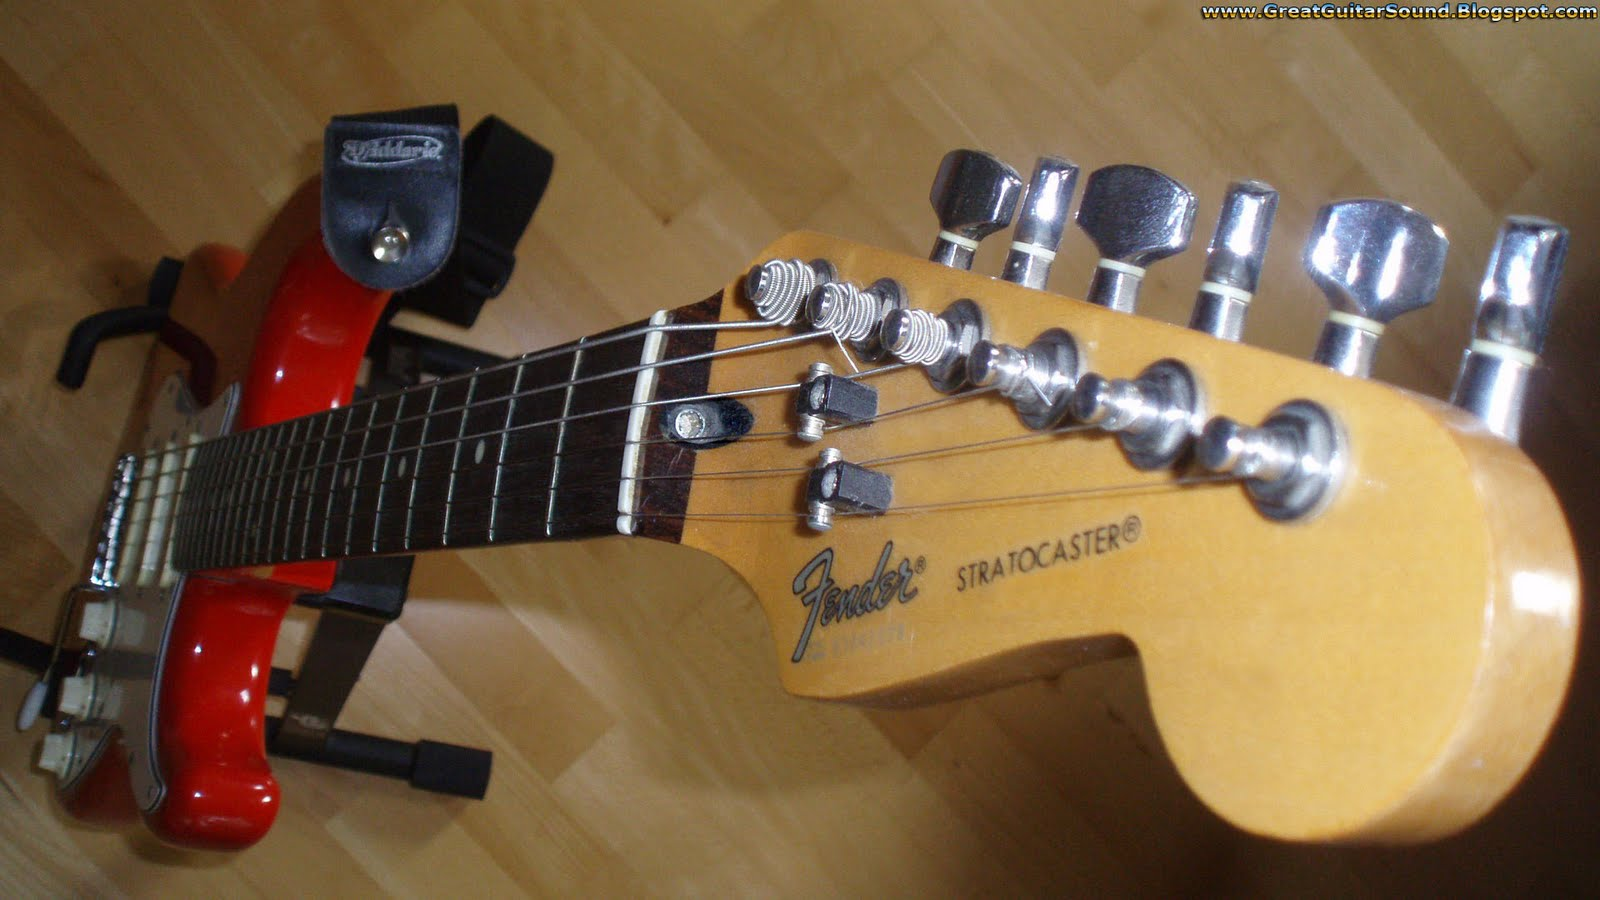 Red White Fender Stratocaster Electric Guitar Headstock Wallpaper 1920x1080